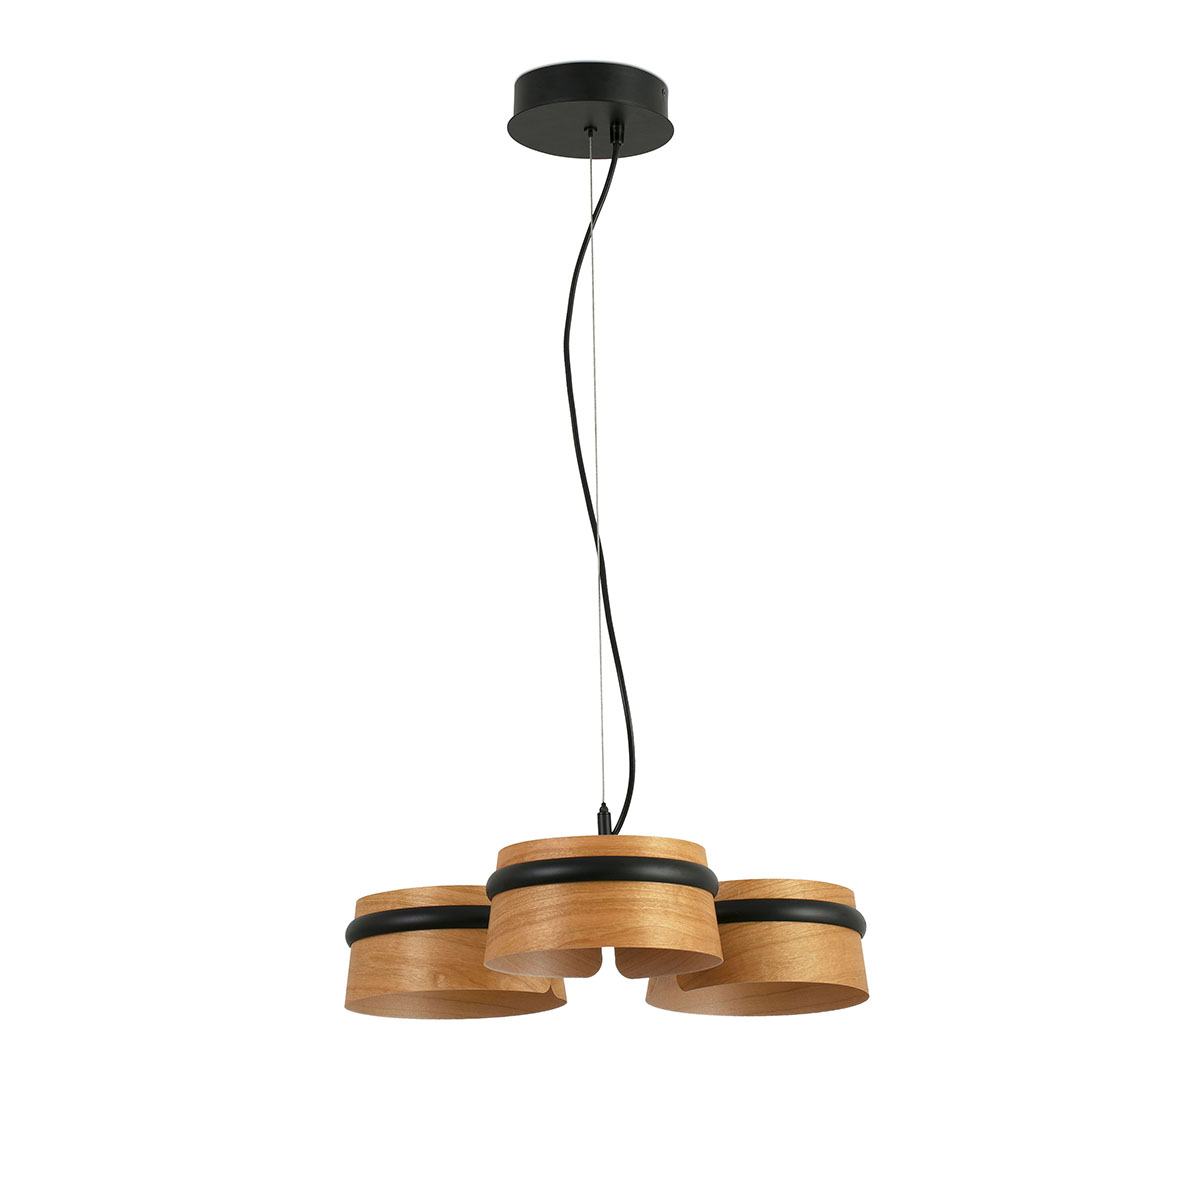 Lustra LED dimabila design deosebit LOOP 29567 Faro Barcelona